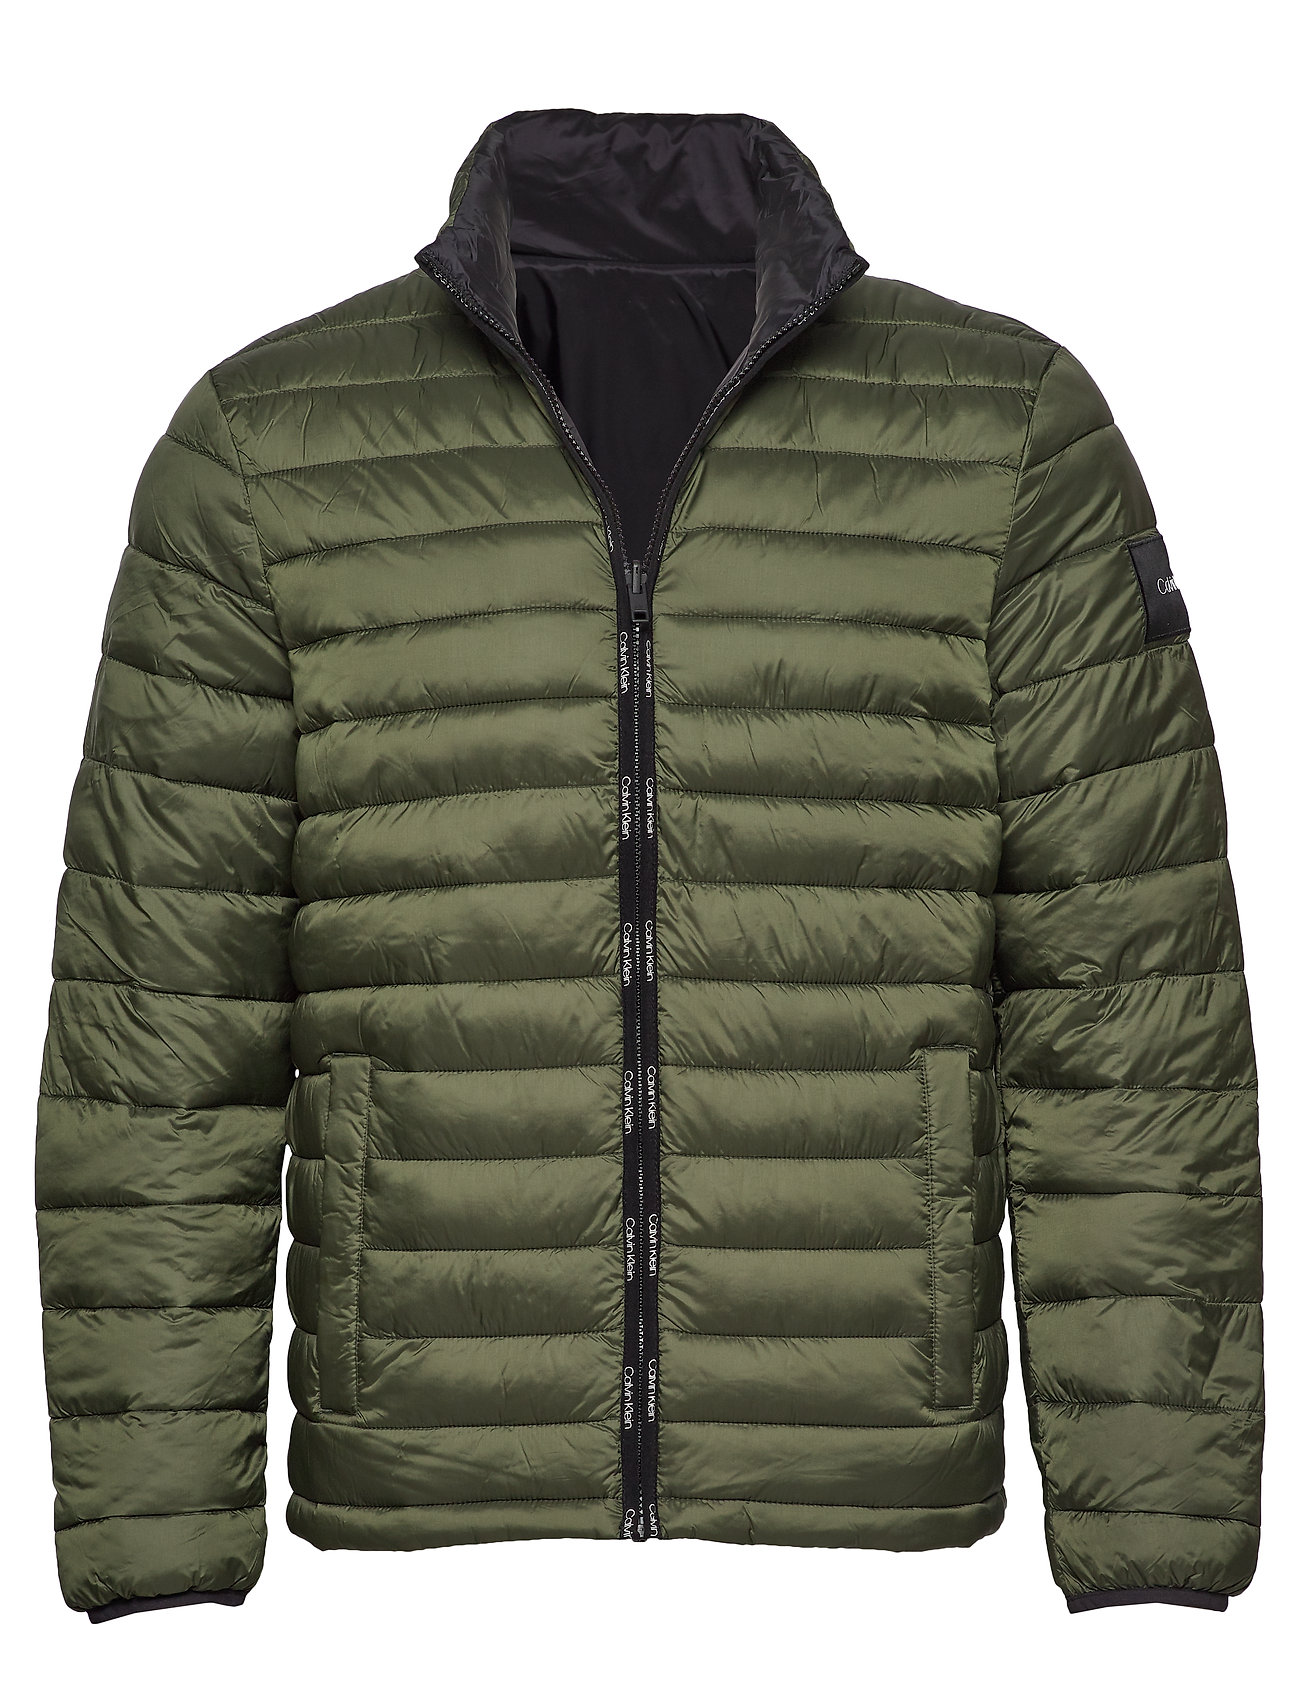 Calvin Klein REVERSIBLE NYLON JACKET - DARK OLIVE